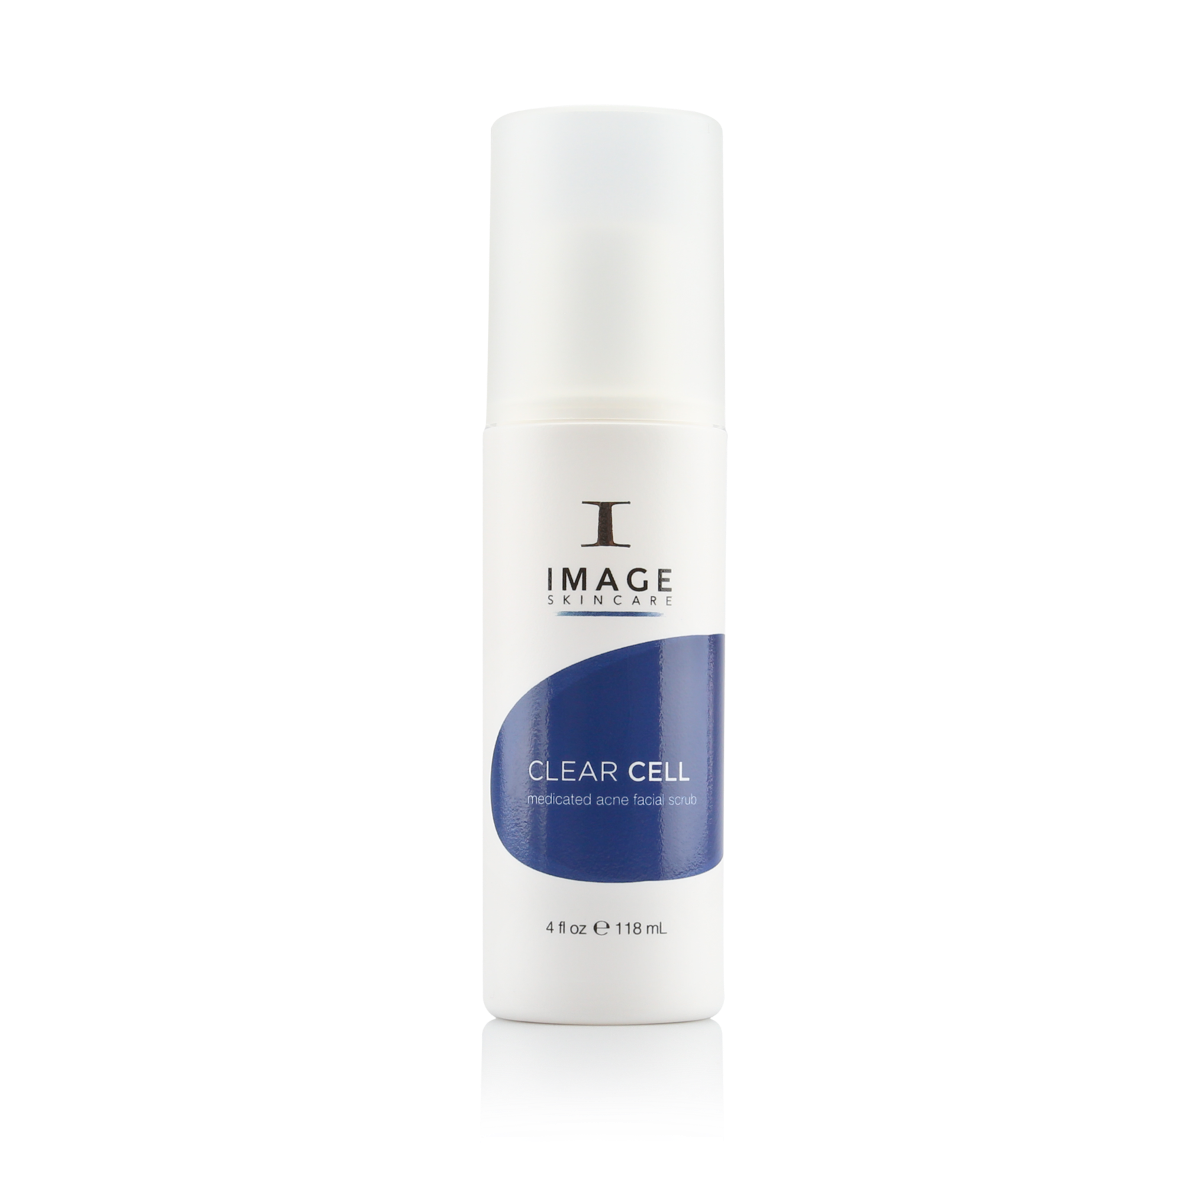 Clear Cell Medicted Acne Scrub